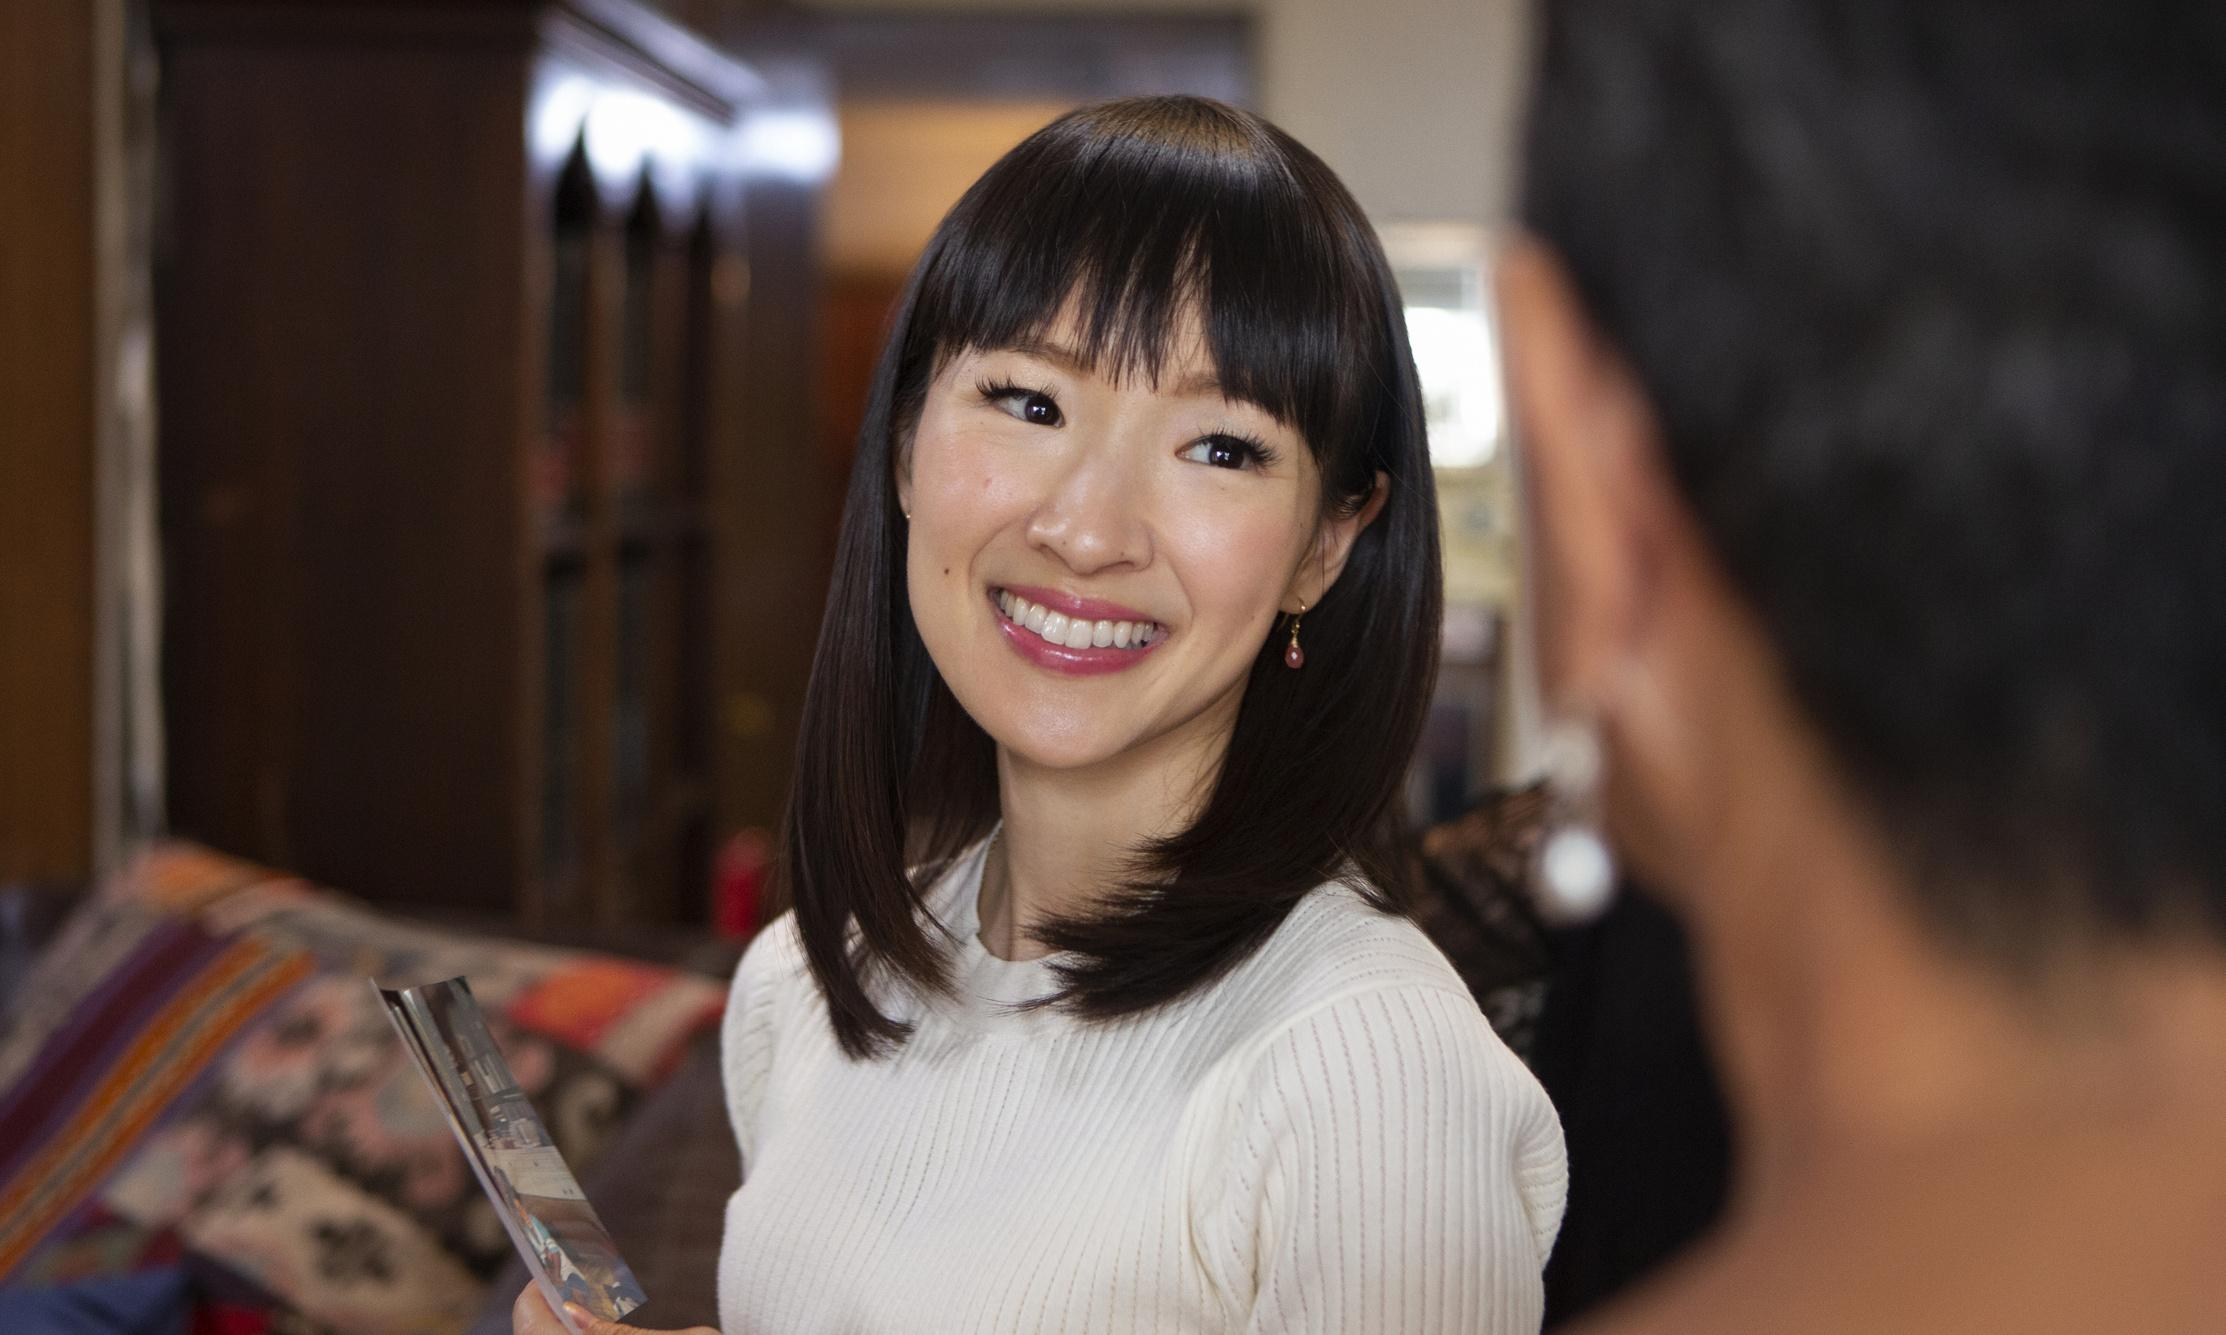 Sparking joy: use Marie Kondo's approach to declutter your mind